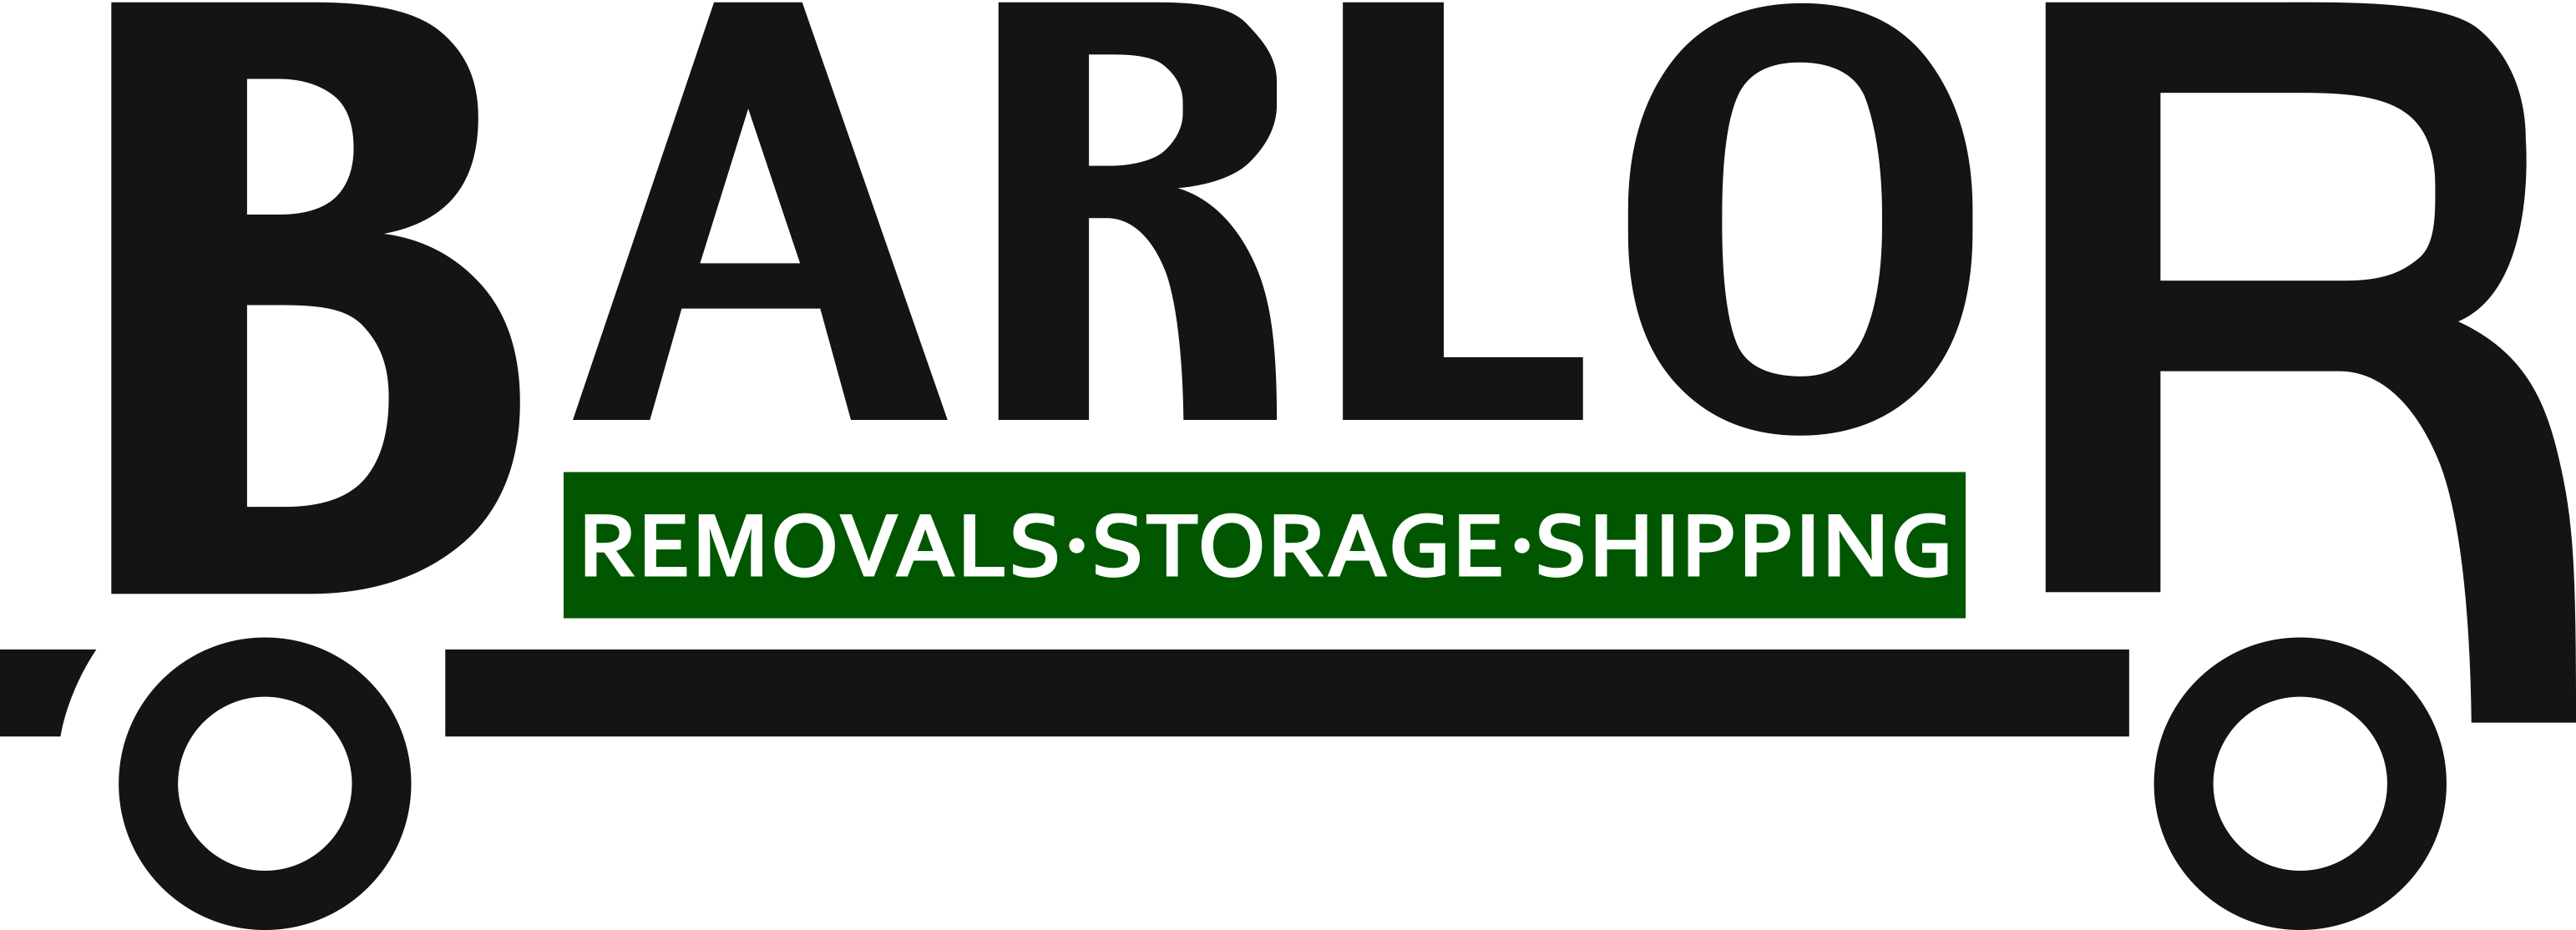 Barlor removal.storage.shipping